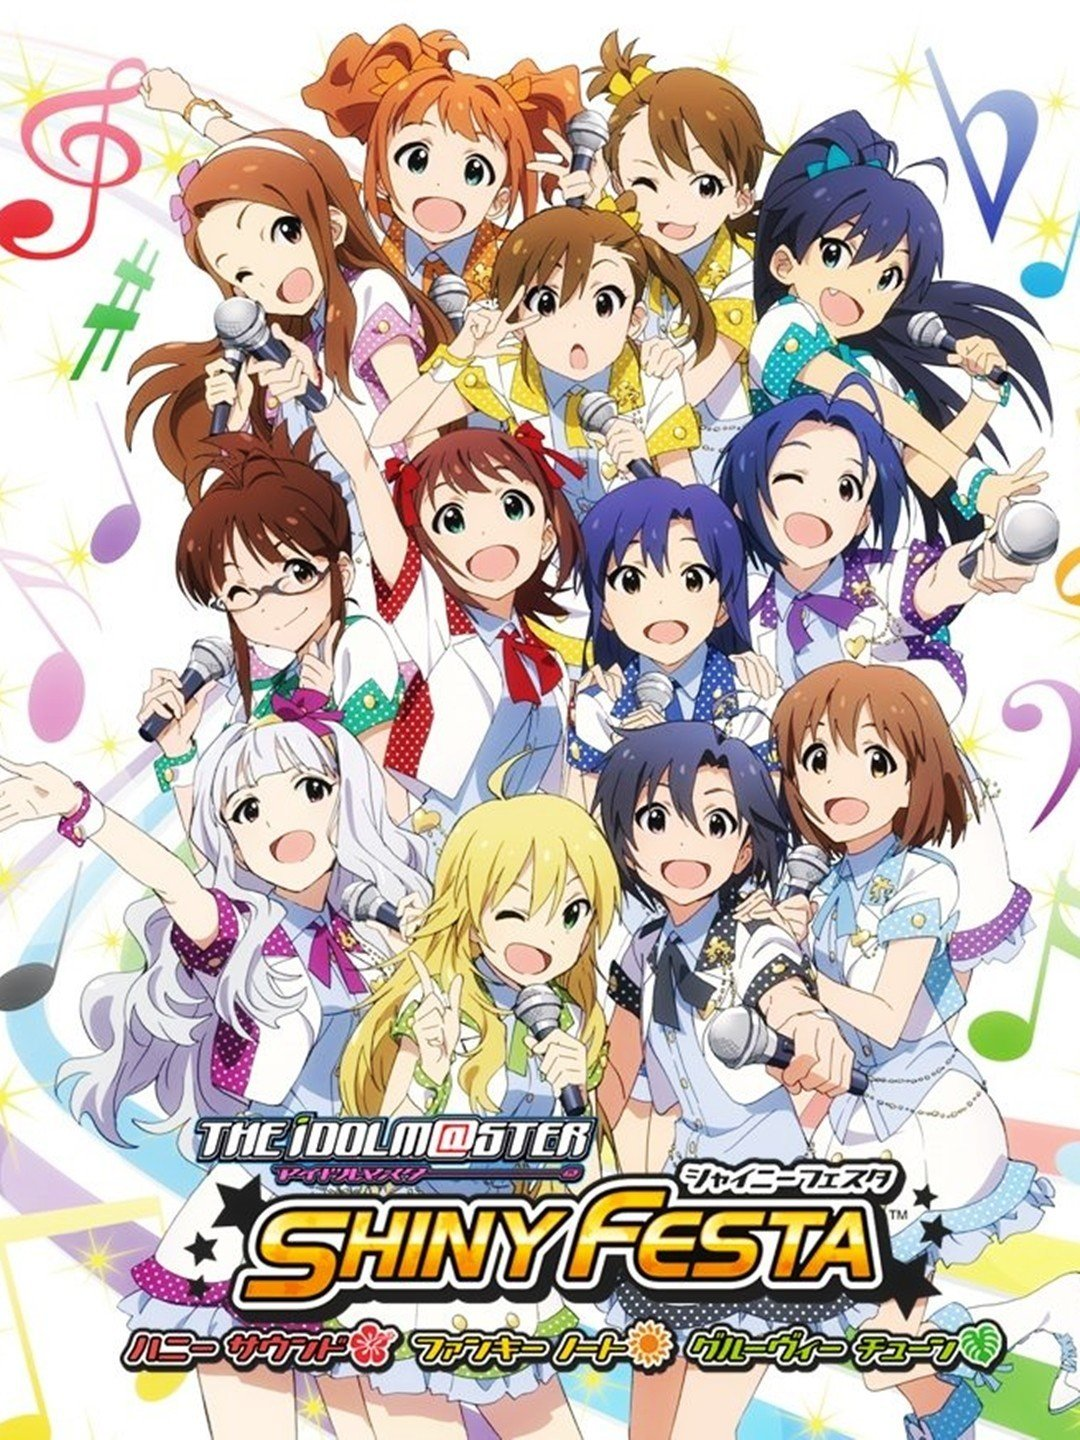 THE IDOLM@STER SHINY FESTA 偶像大师 闪耀祭典